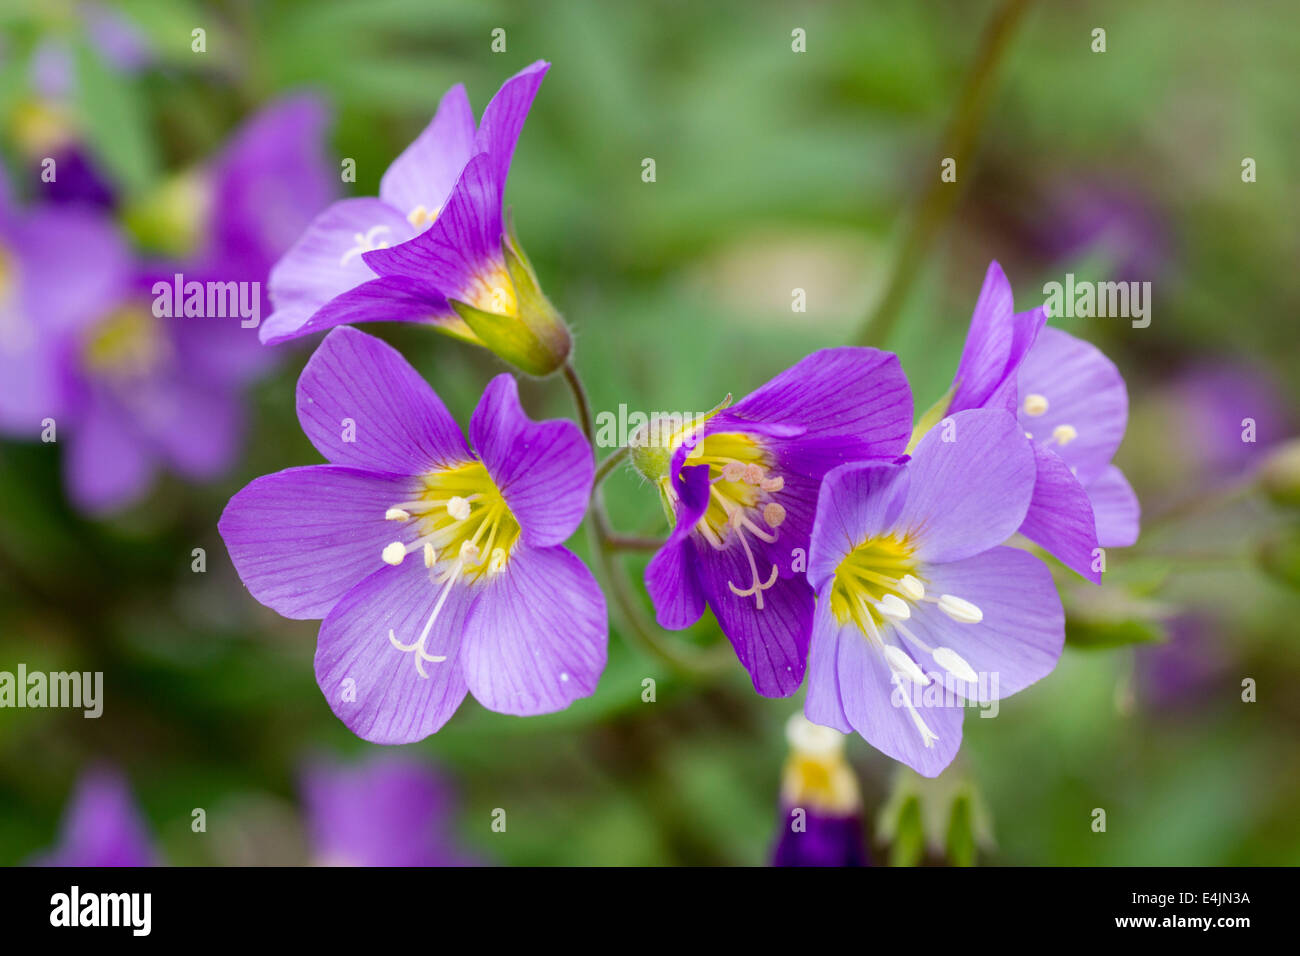 Flowers of the perennial Polemonium 'Lambrook Mauve' - Stock Image